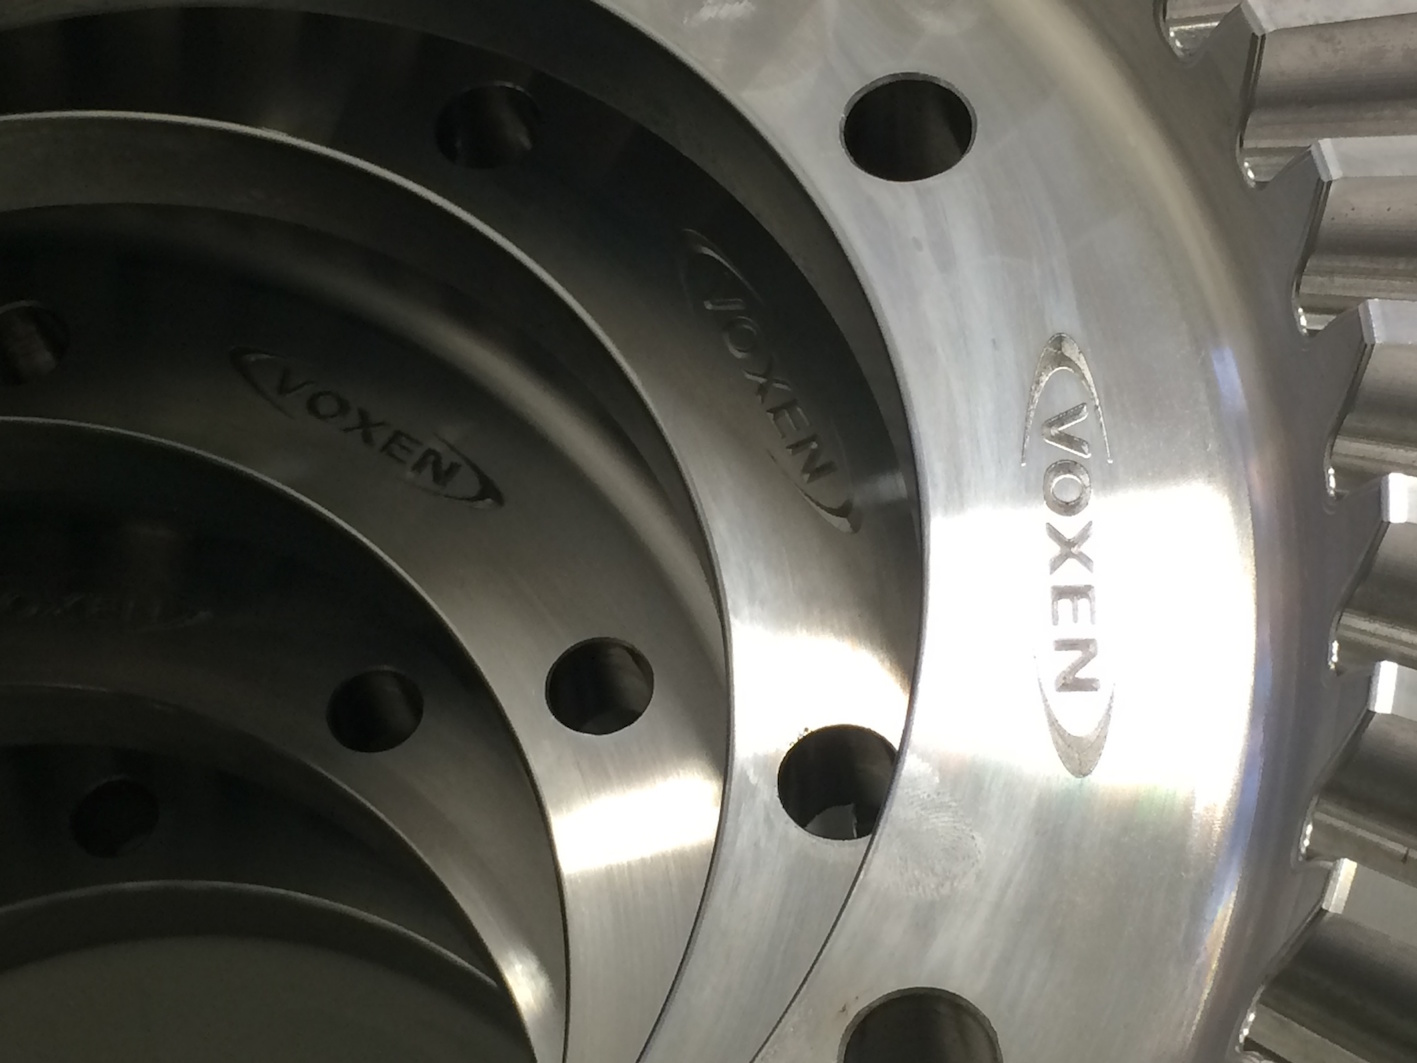 What Does Cnc Stand For >> CNC metalbearbejdning - CNC automatdrejning, CNC fræsning ...